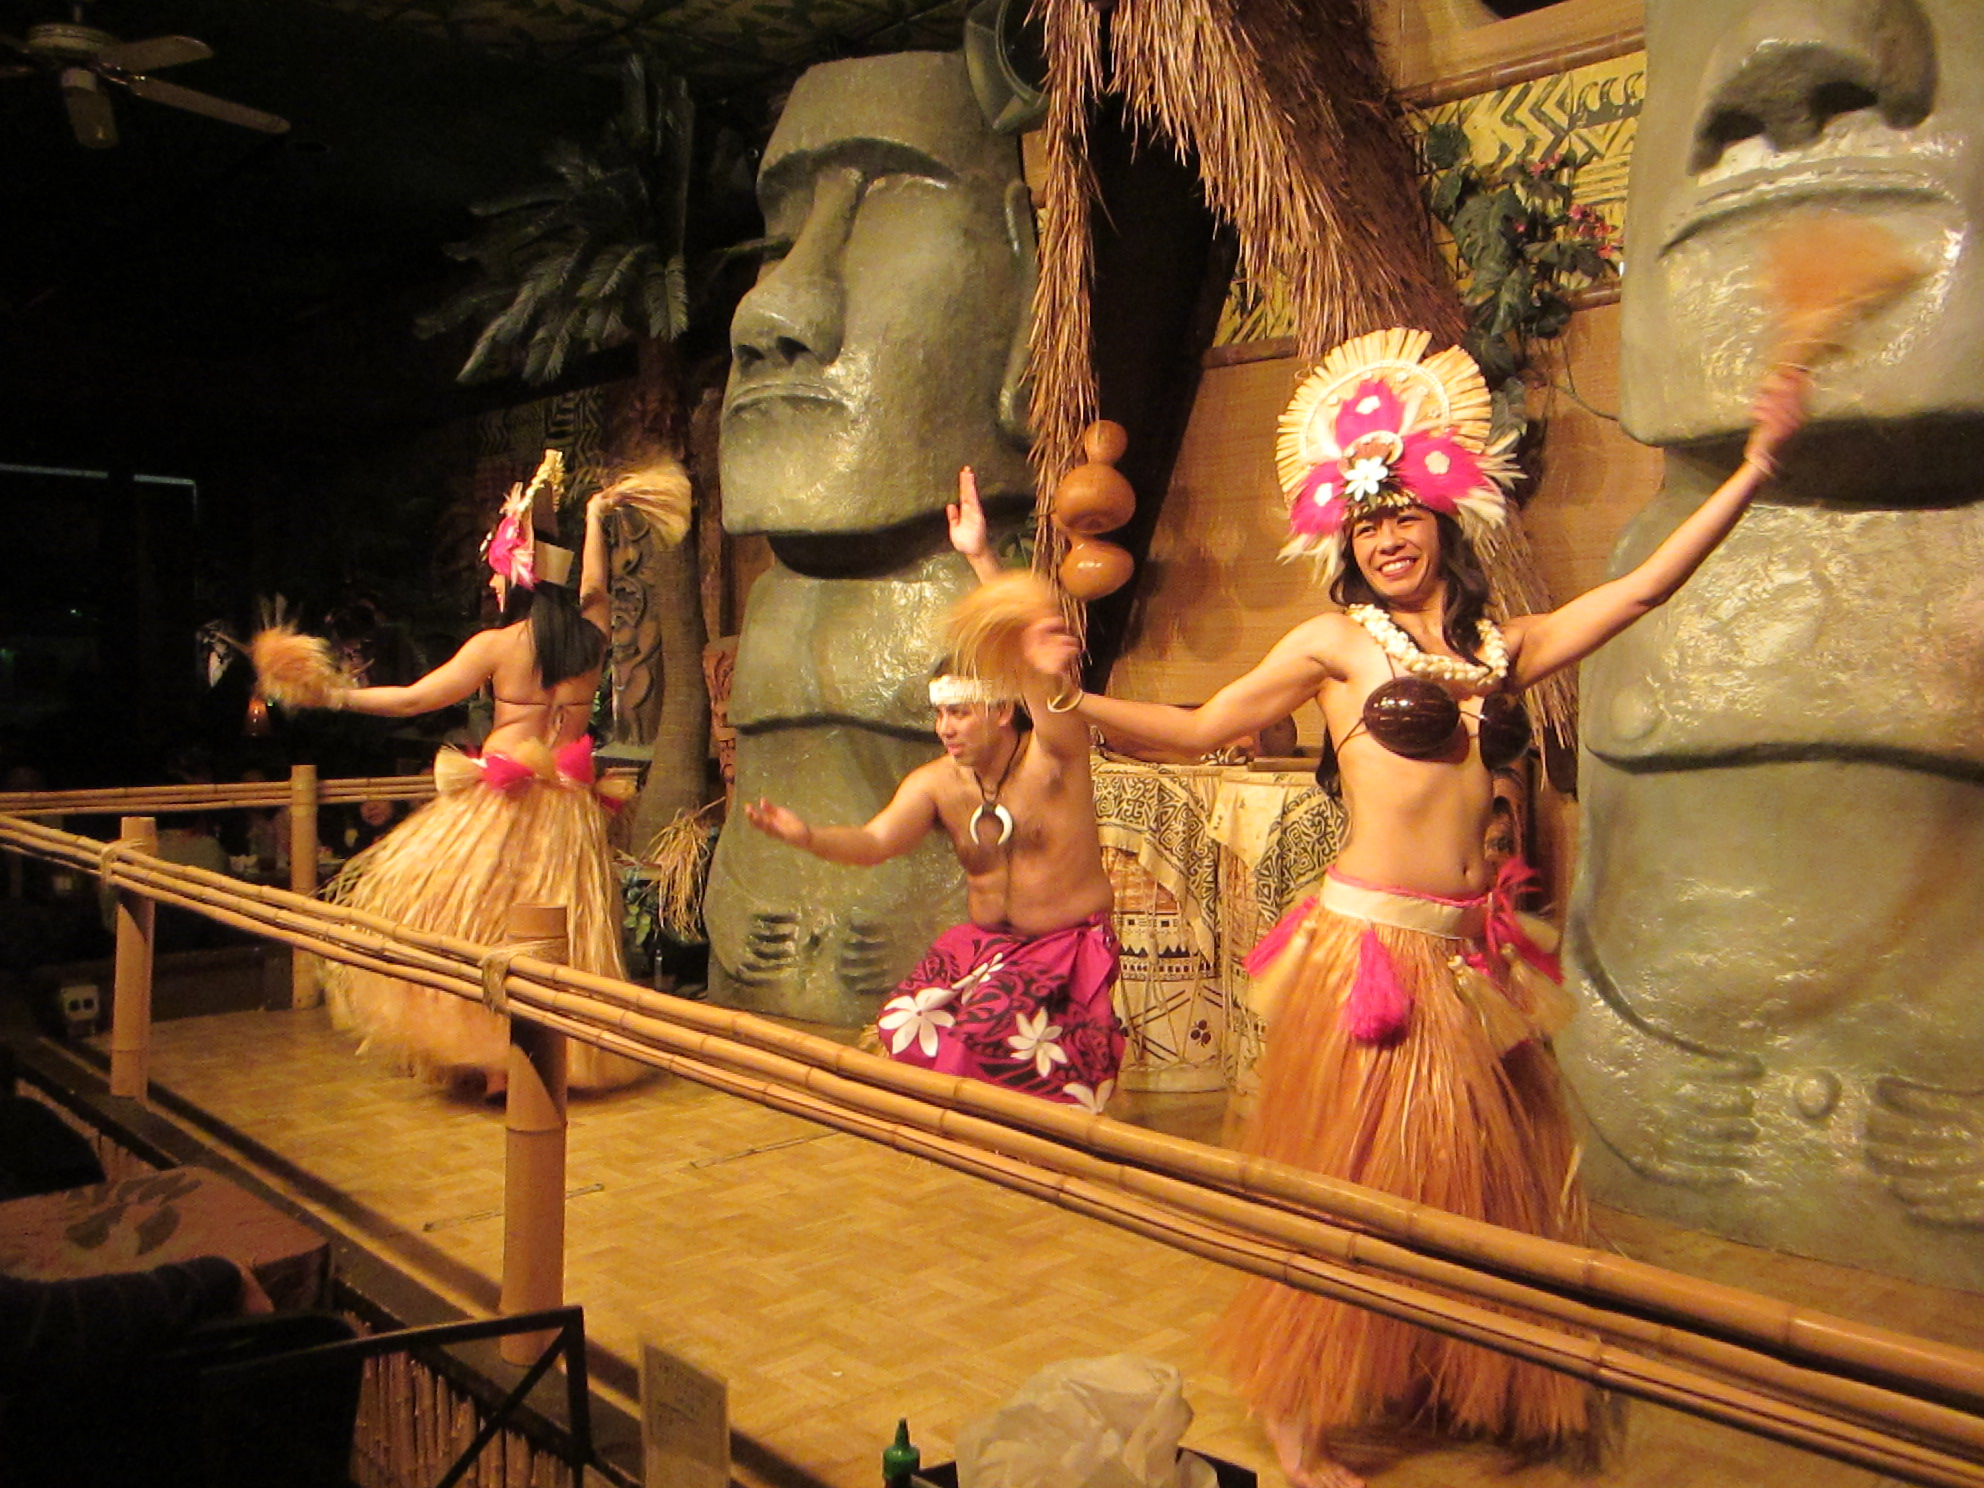 The tiki terrace dancers grace the stage and perform dances from all Polynesia! Above, you see the Tahitian ote'a!